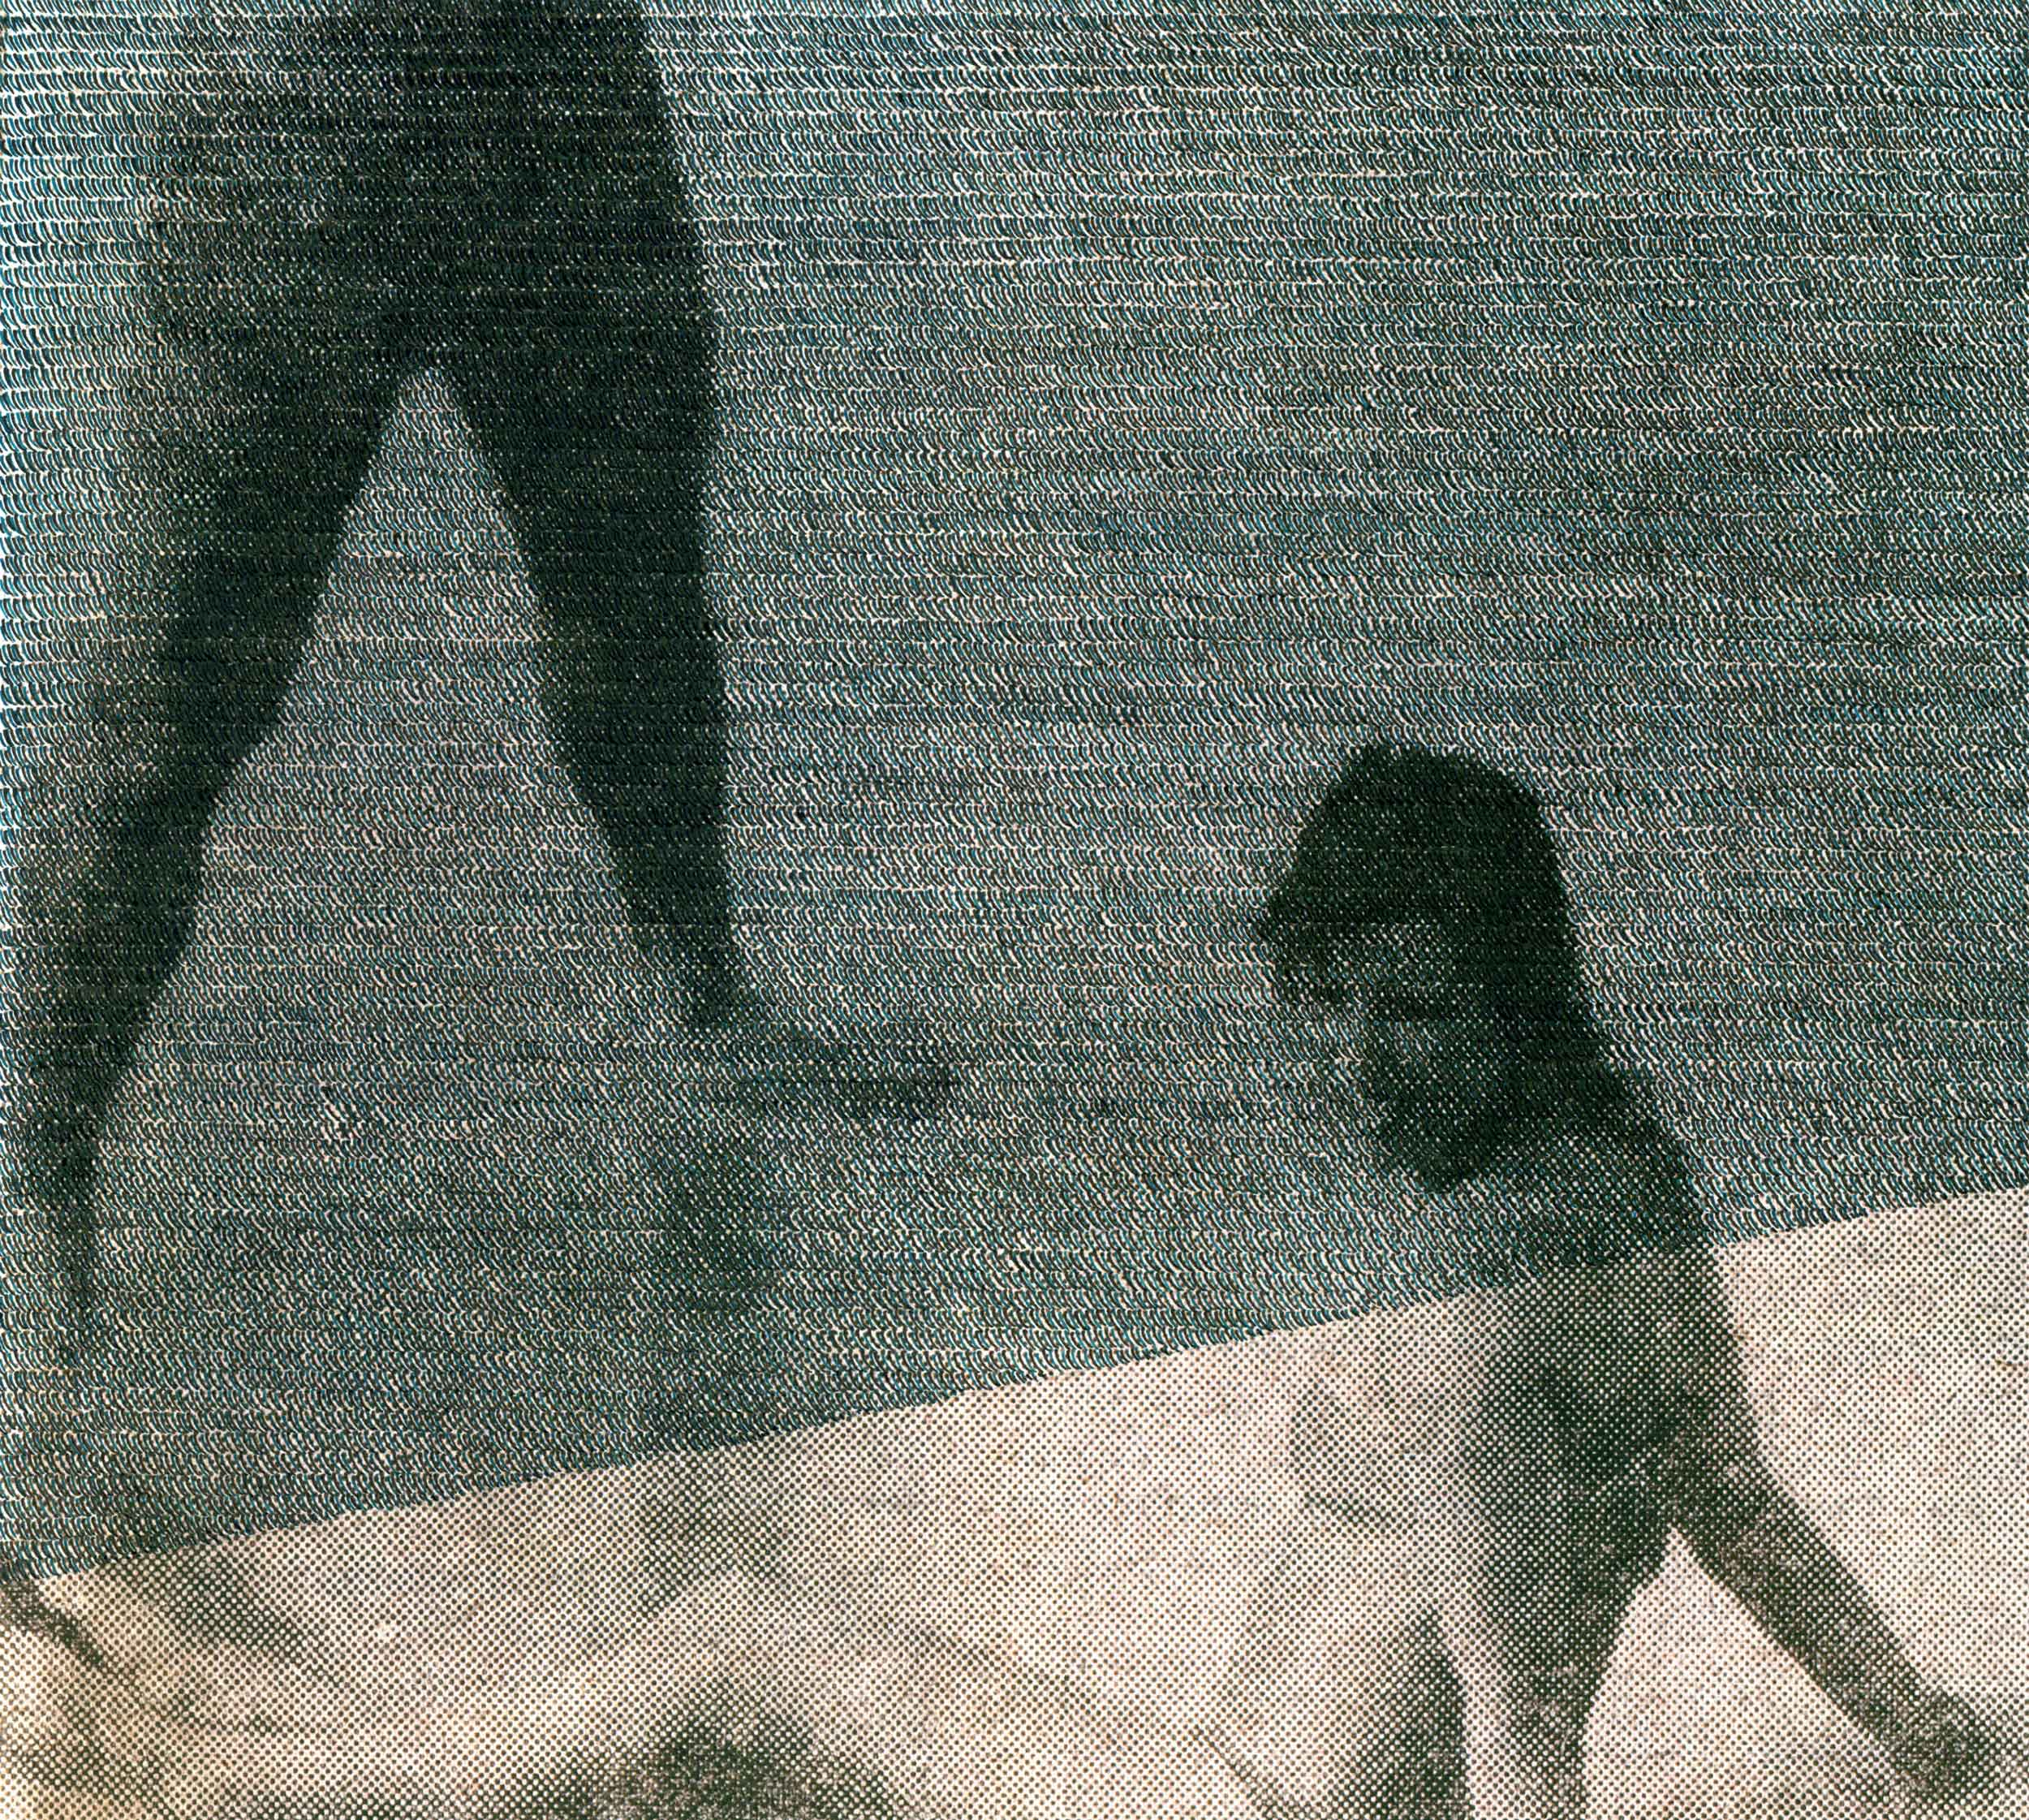 Green Tide Lovers  (from the series Wavering Screens), inkjet print on paper from original paper collage, variable size, 2012